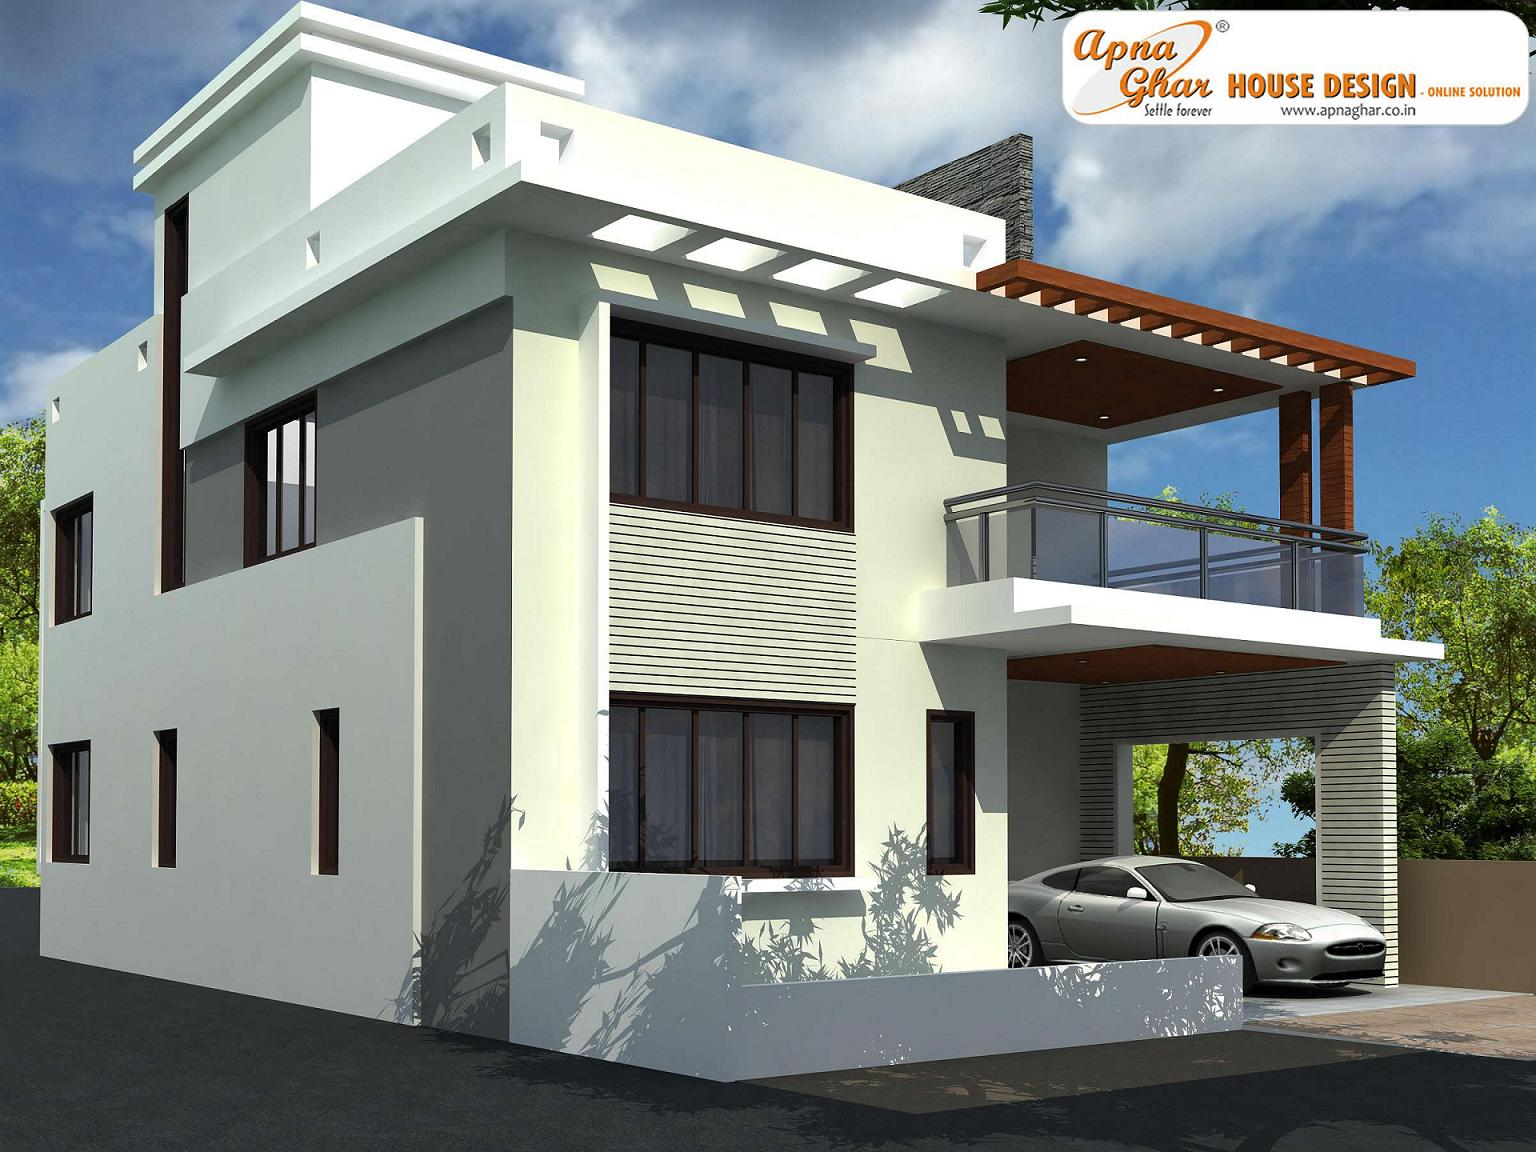 ApnaGhar House Design  Complete Architectural Solution  Page 6